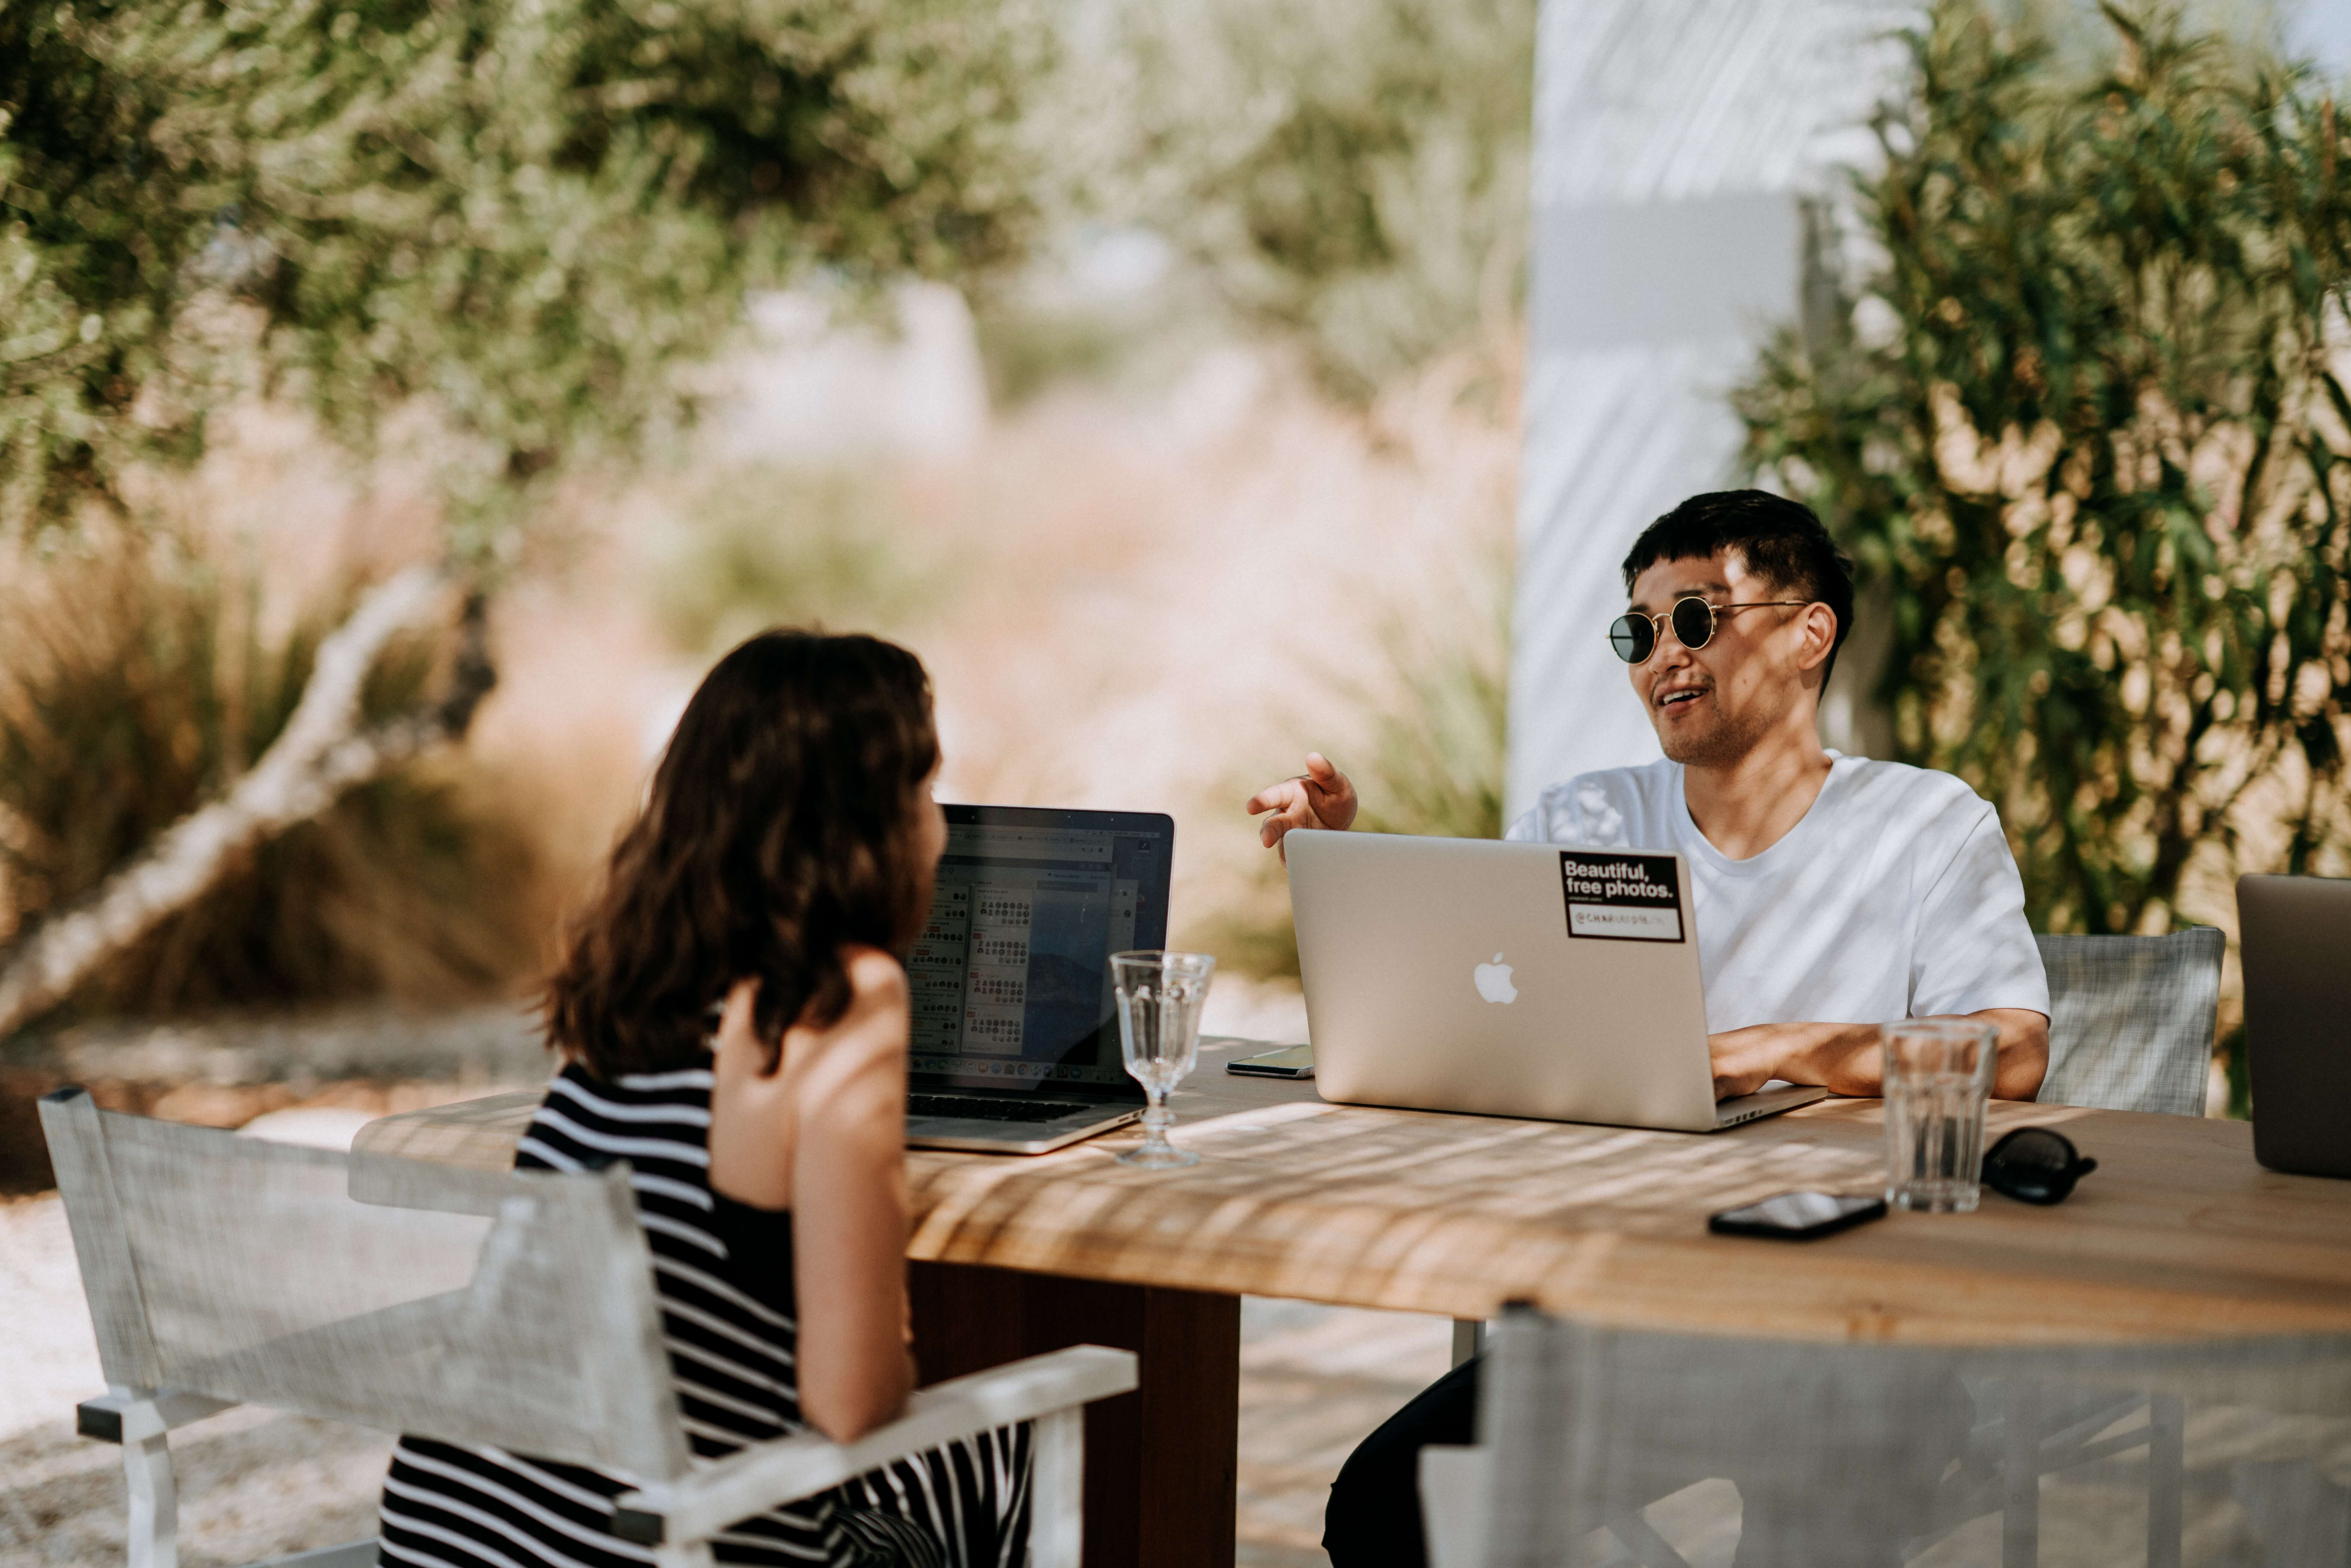 A man and a woman sitting outside and their laptops are on the table.